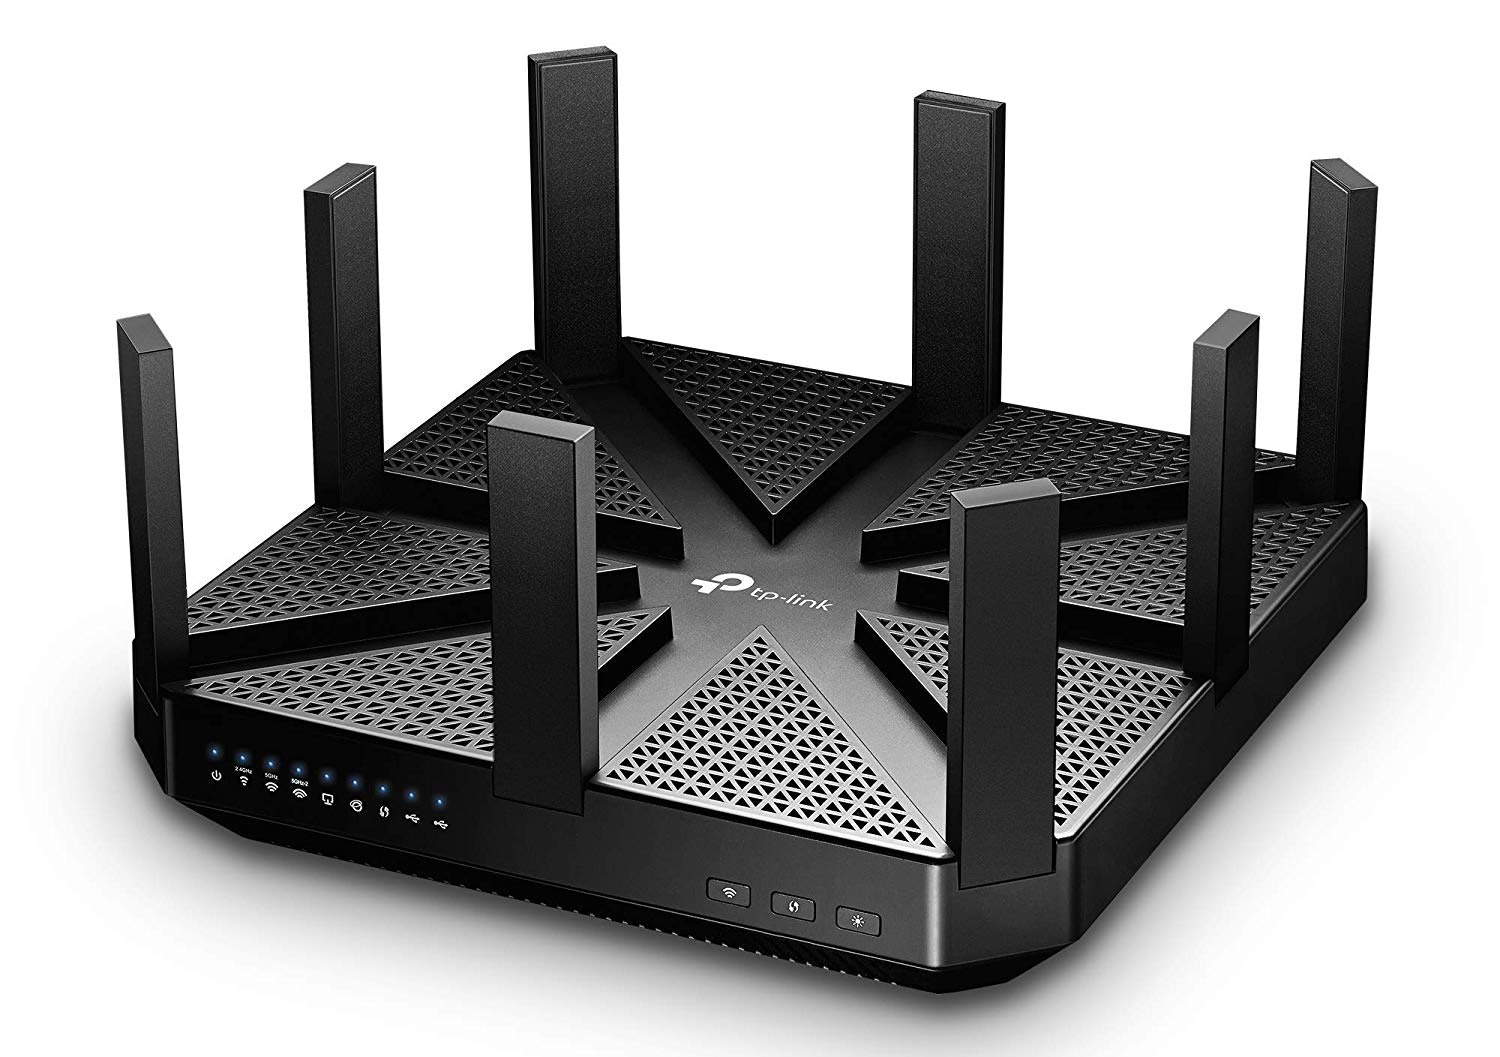 TP-Link AC5400 Wireless Wi-Fi MU-MIMO Tri-Band Router - Powerful Wi-Fi for Gaming and 4K Streaming, Comprehensive Antivirus